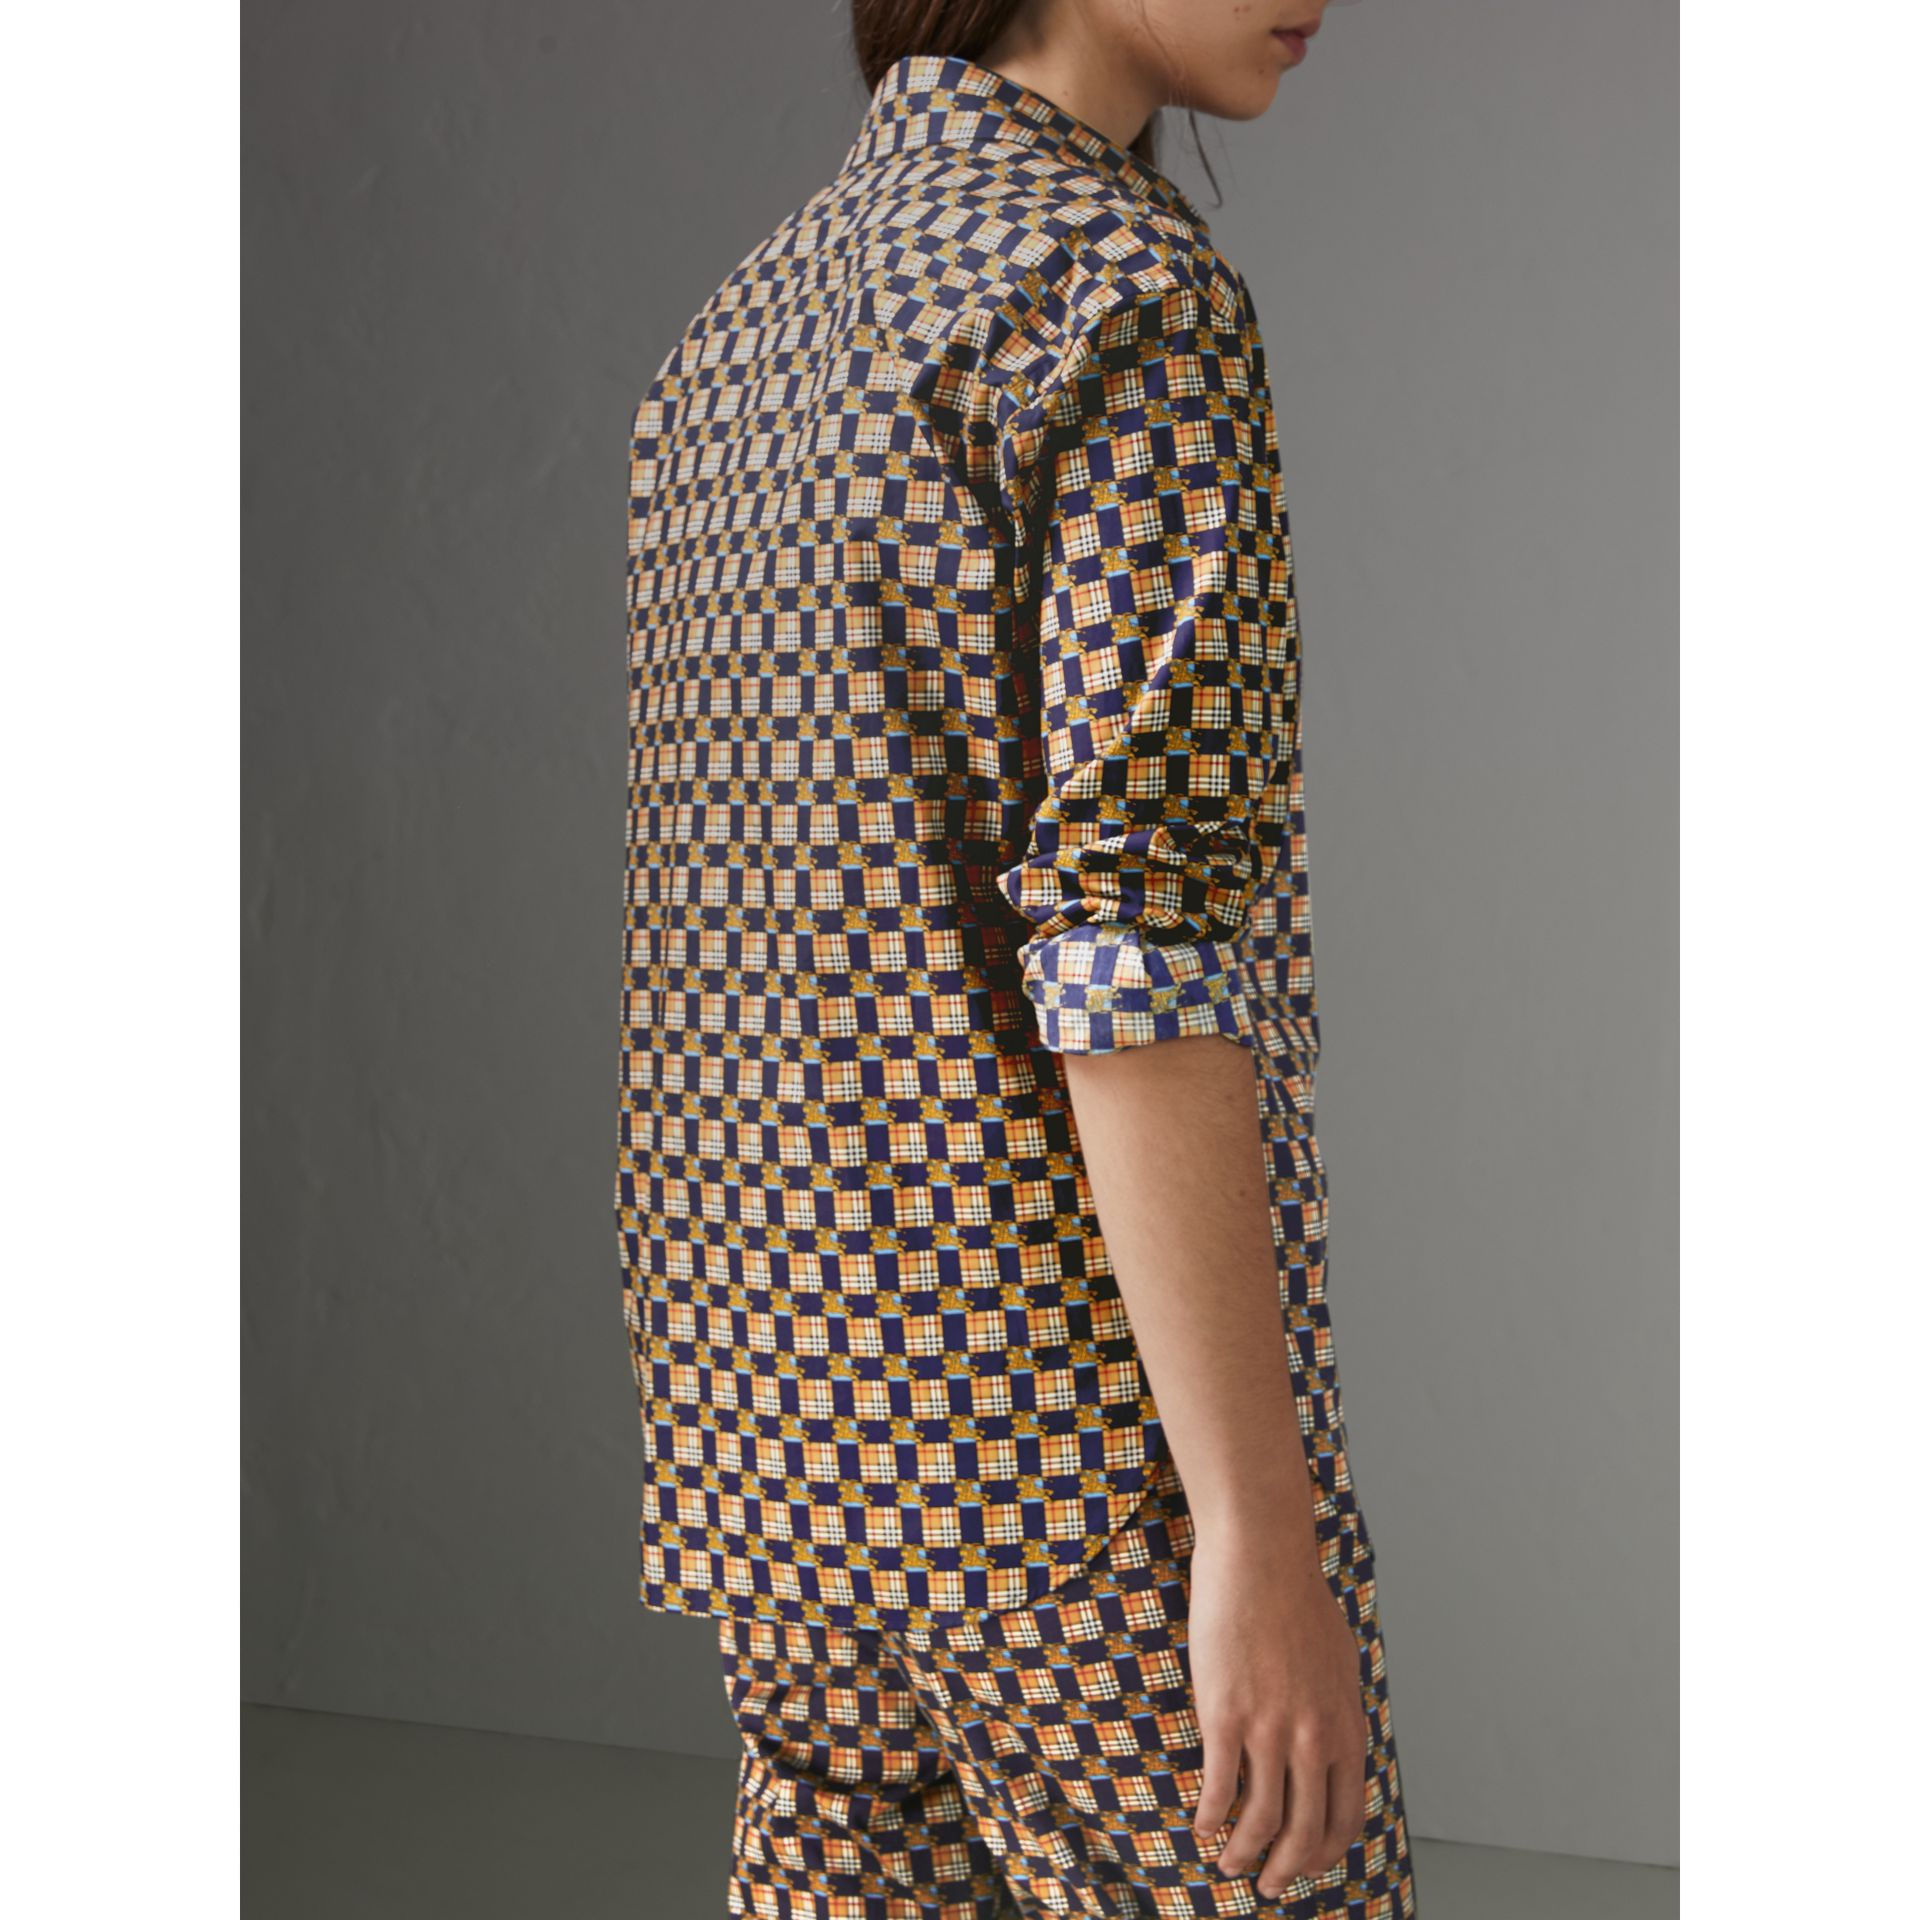 Tiled Archive Print Cotton Shirt in Navy - Women | Burberry - gallery image 2